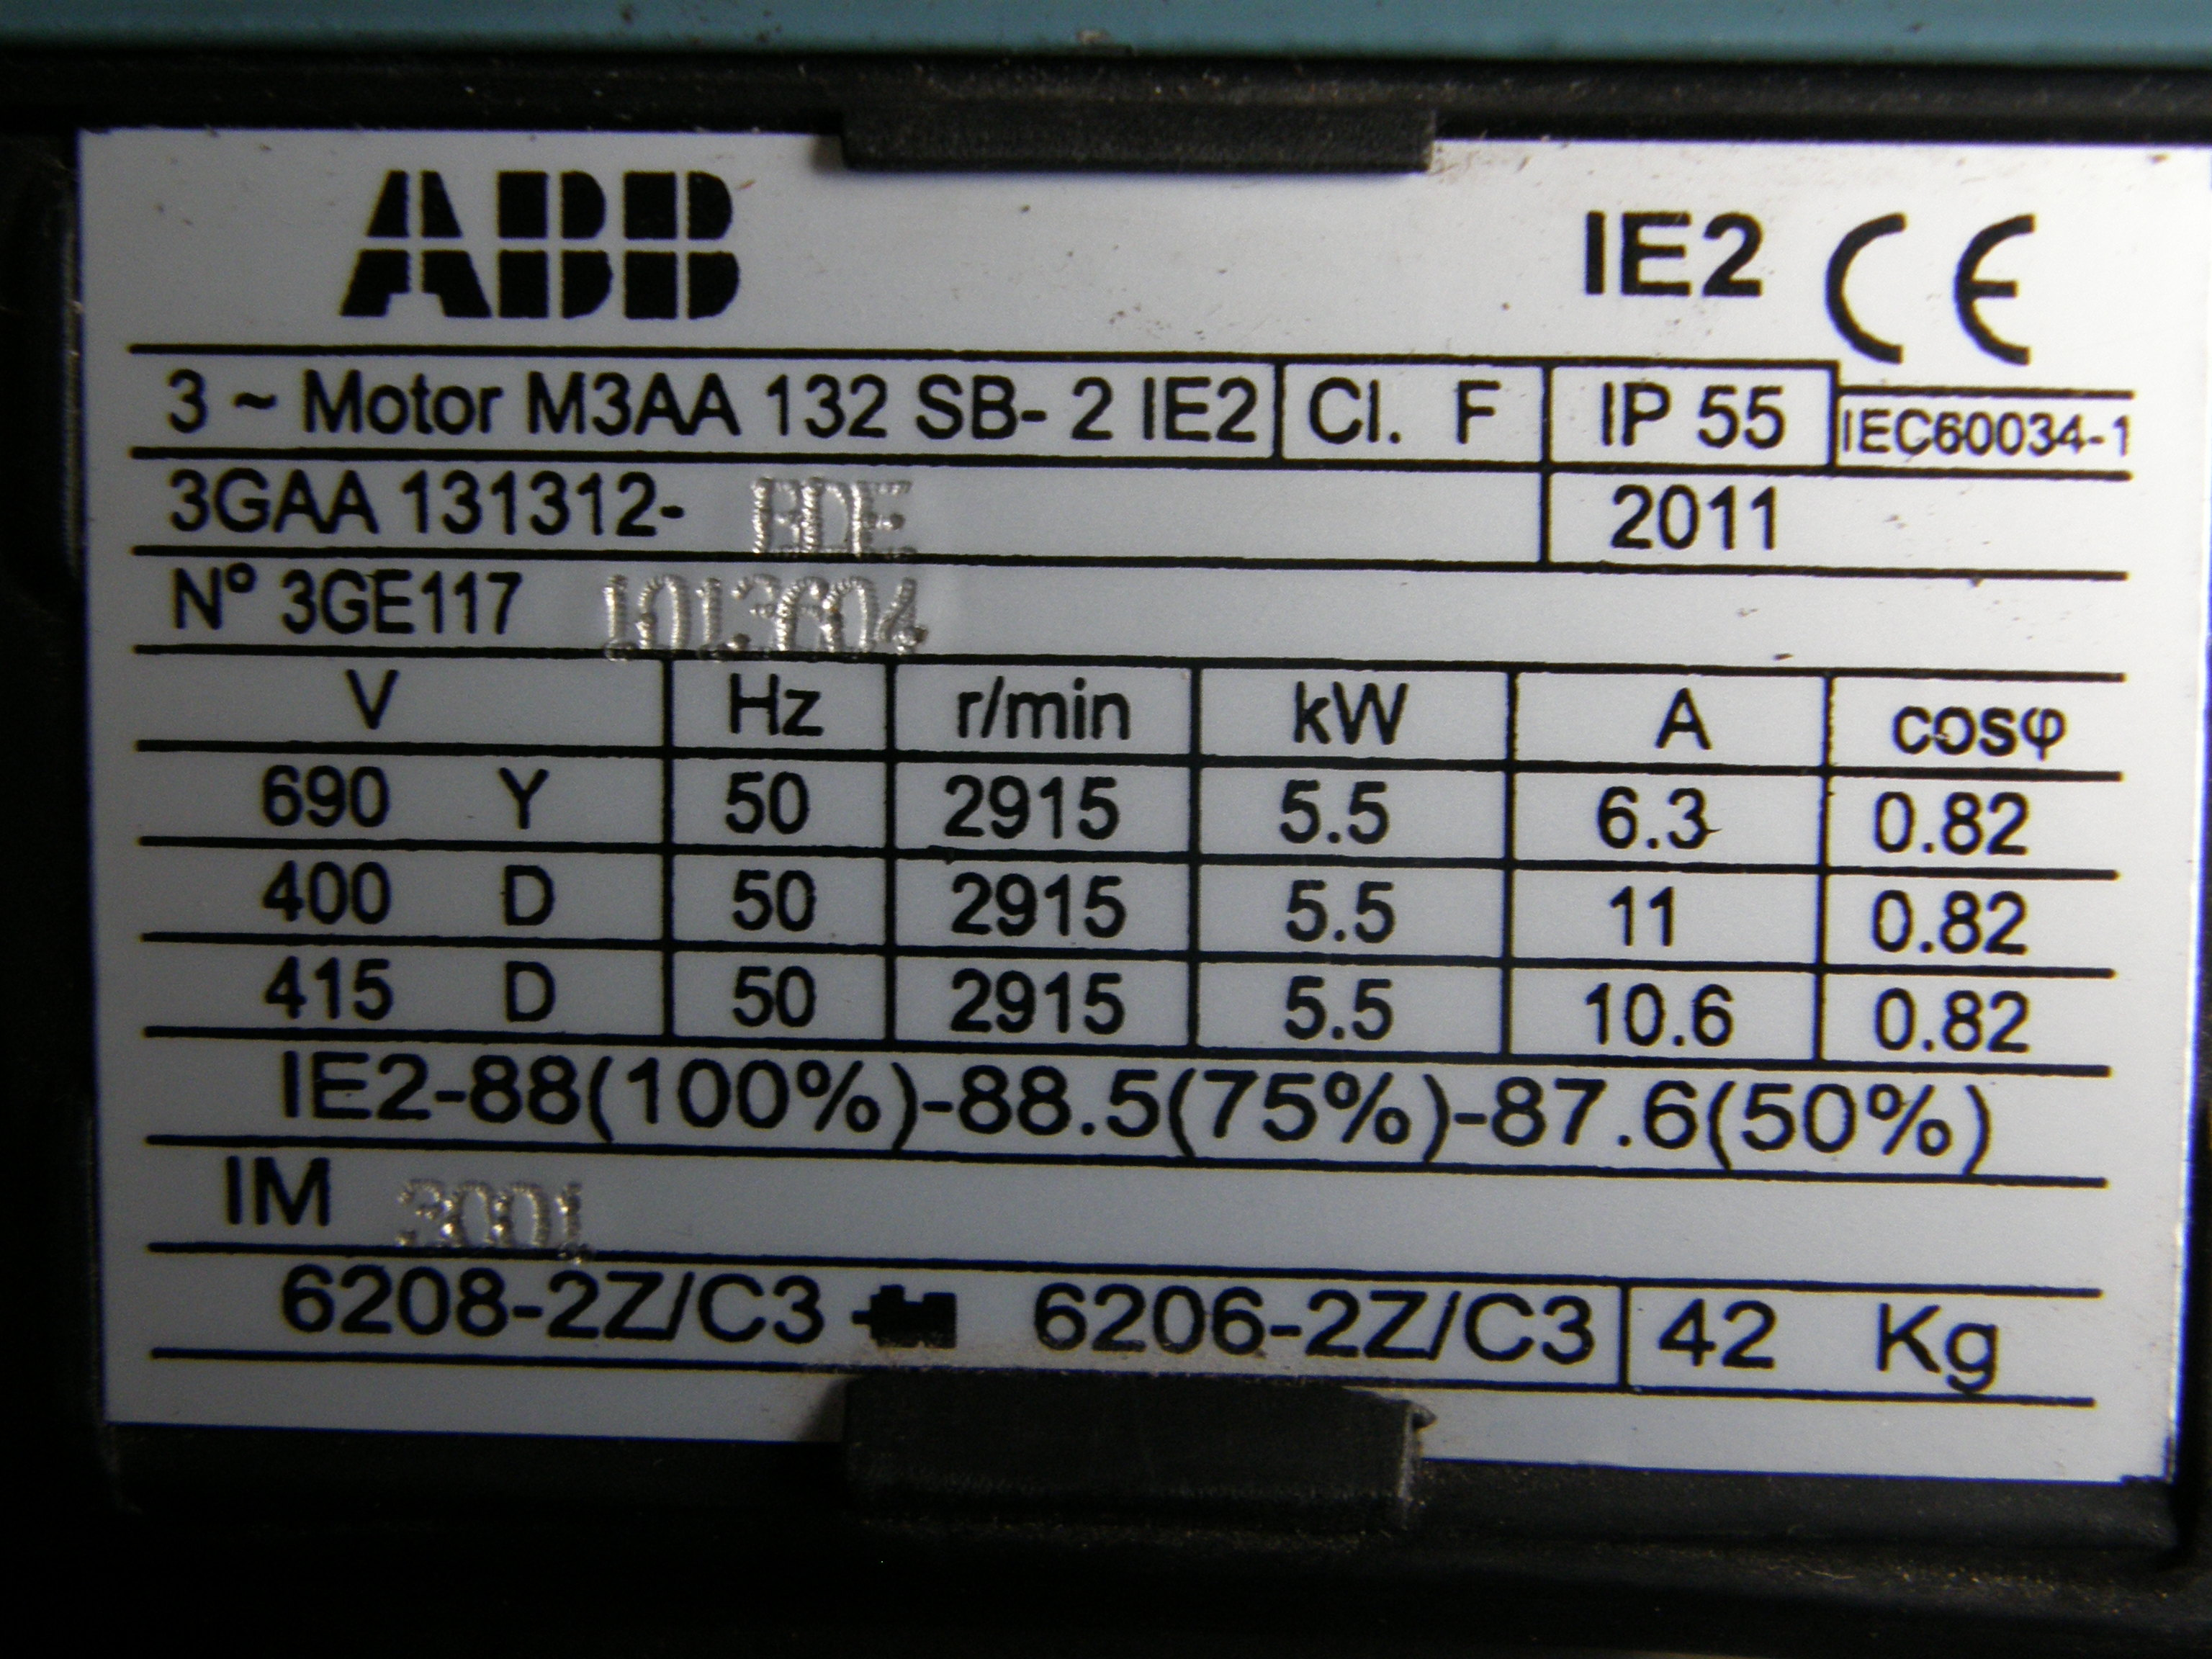 Phase Motor Wiring Diagram 5 5kw Abb Electric Motor 2800rpm 3 Phase 4 Pole 7 5hp Ie2